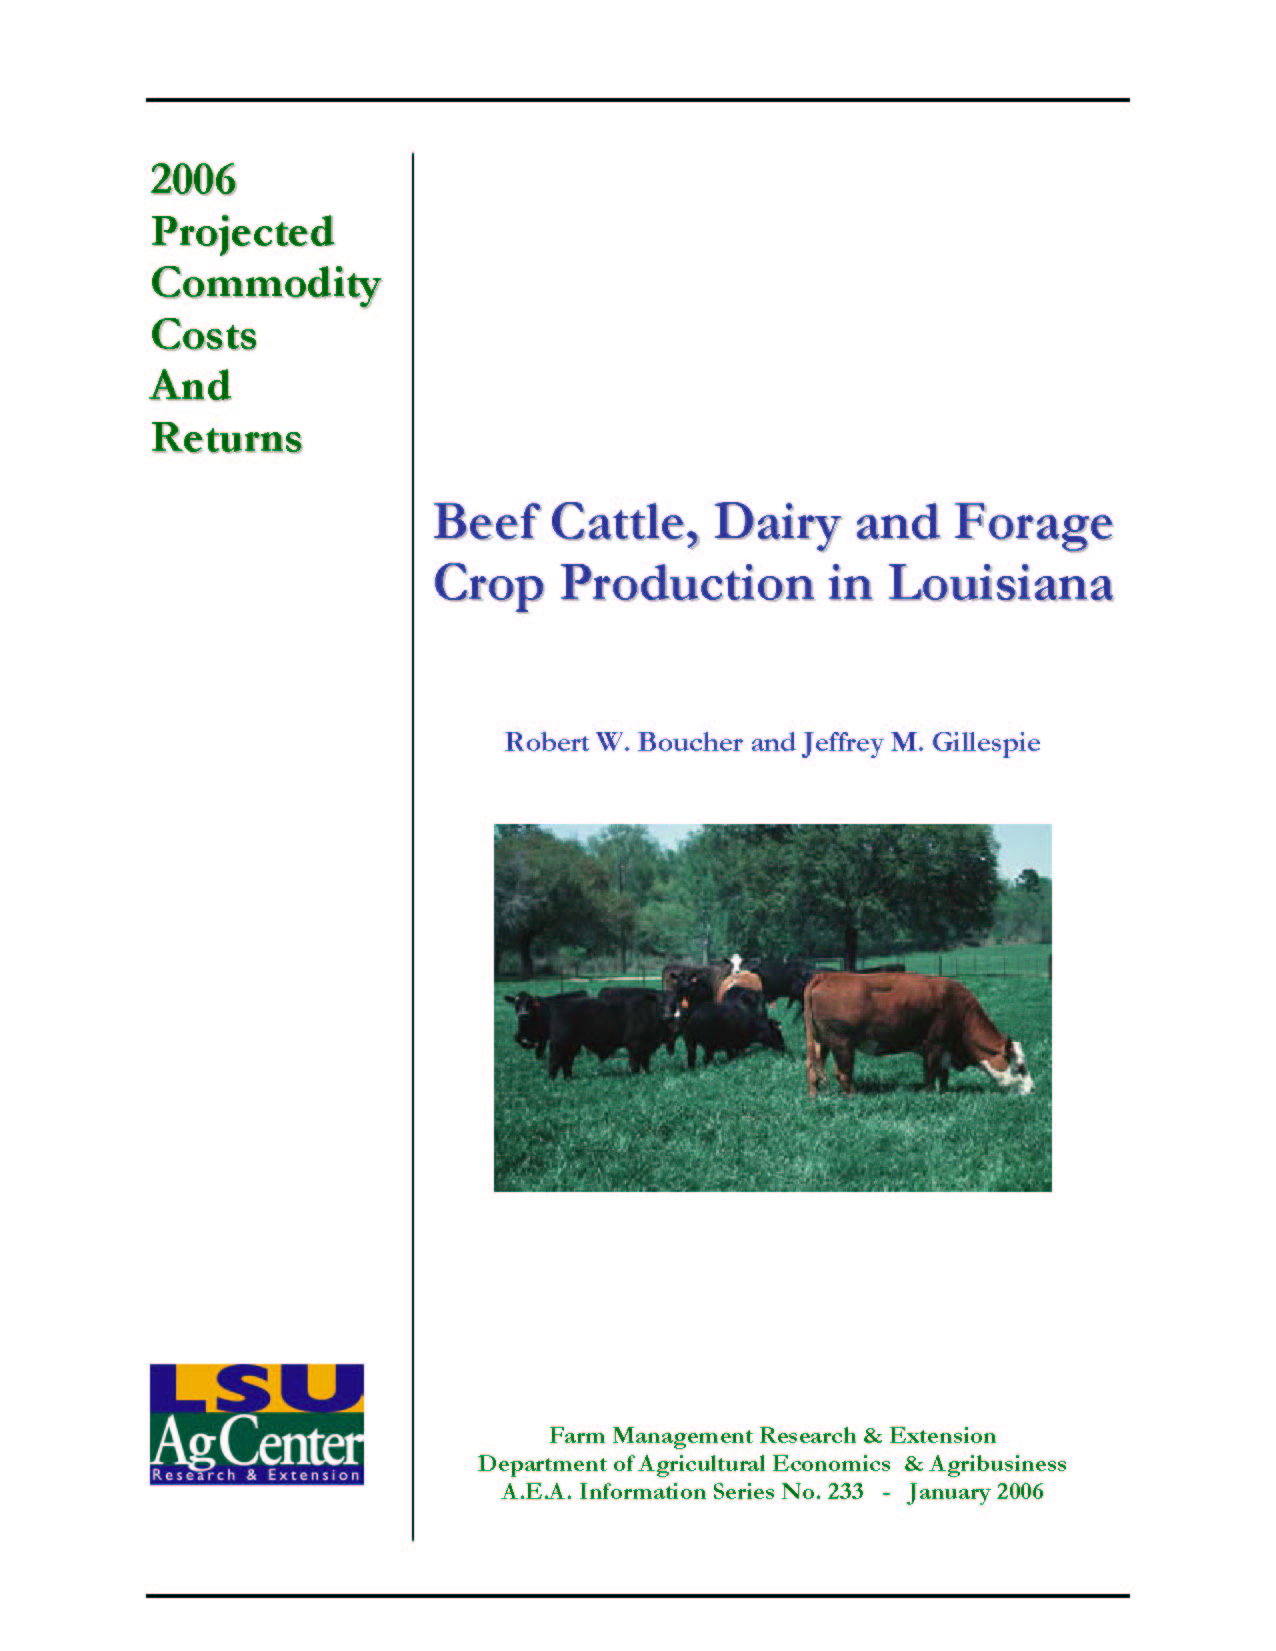 2006 Projected Beef Dairy and Forage Crop Production Costs